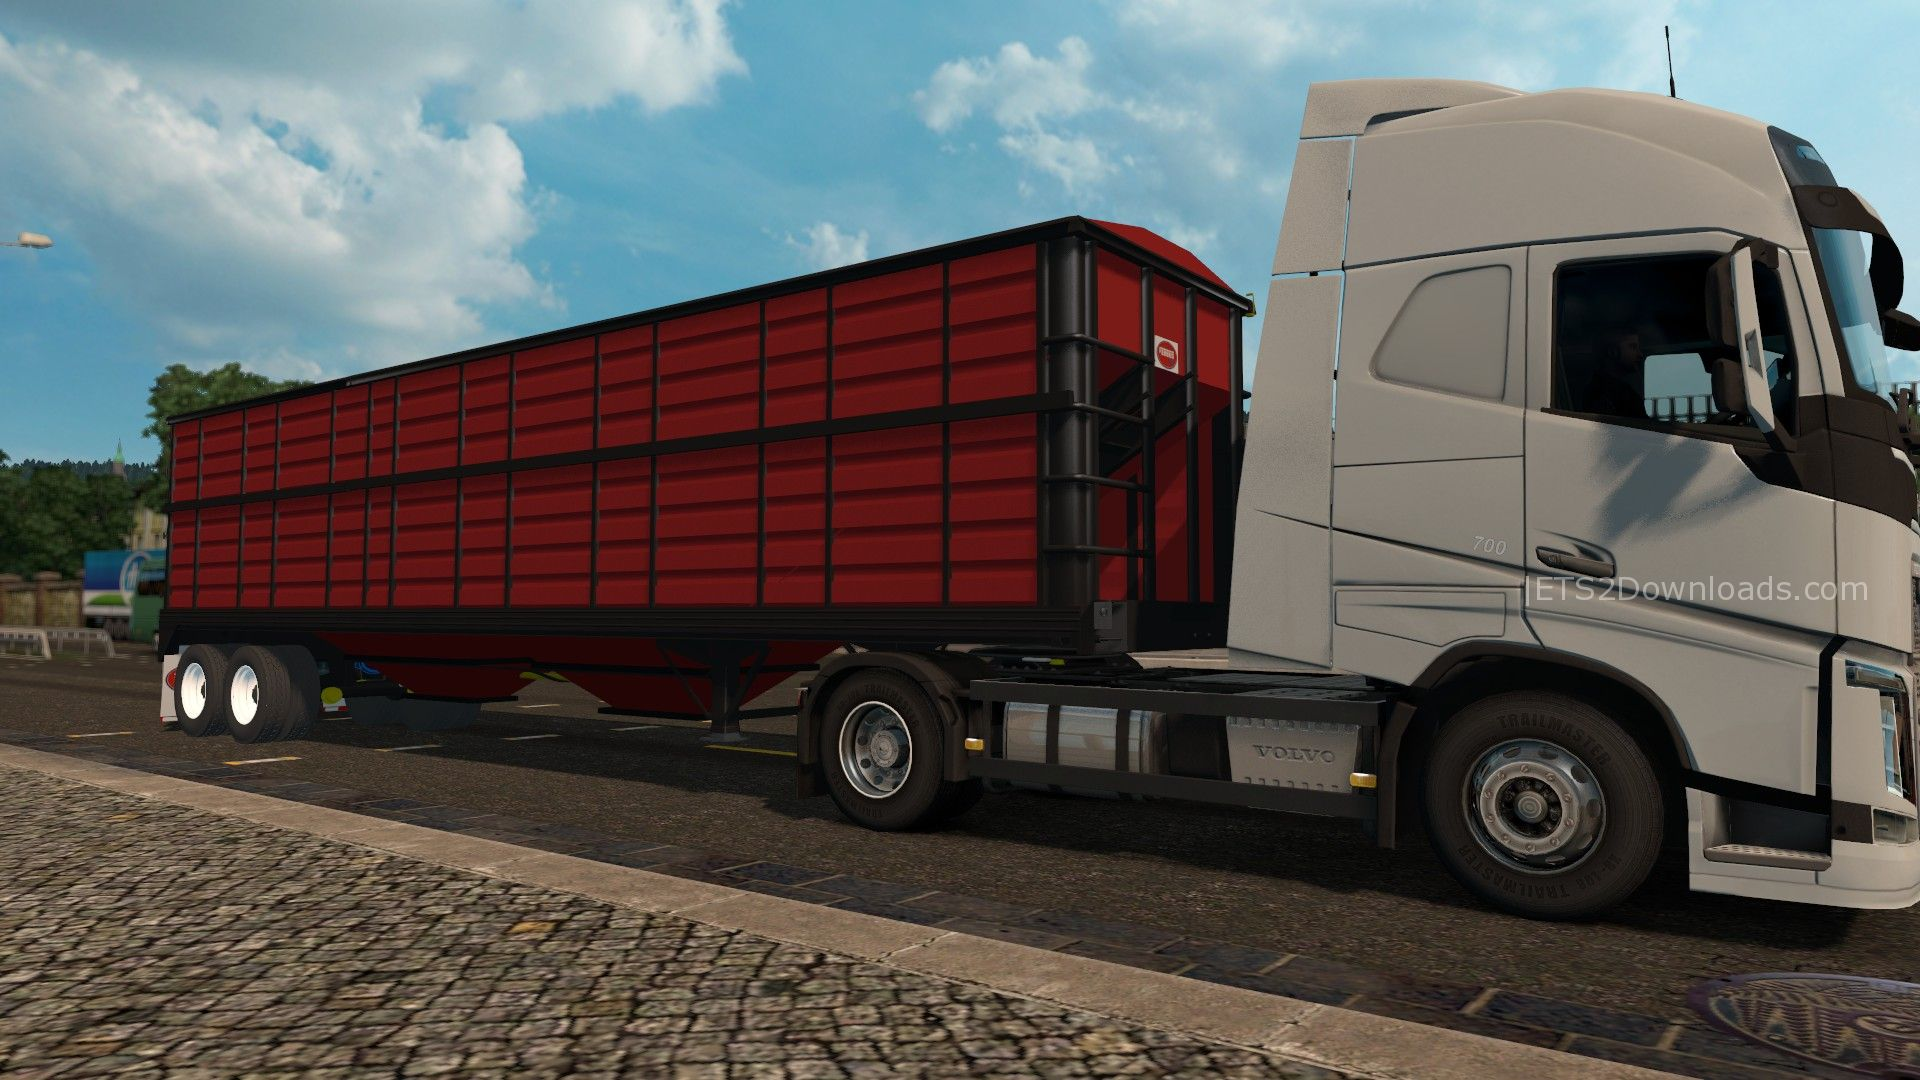 bulk-carrier-ferbus-trailer